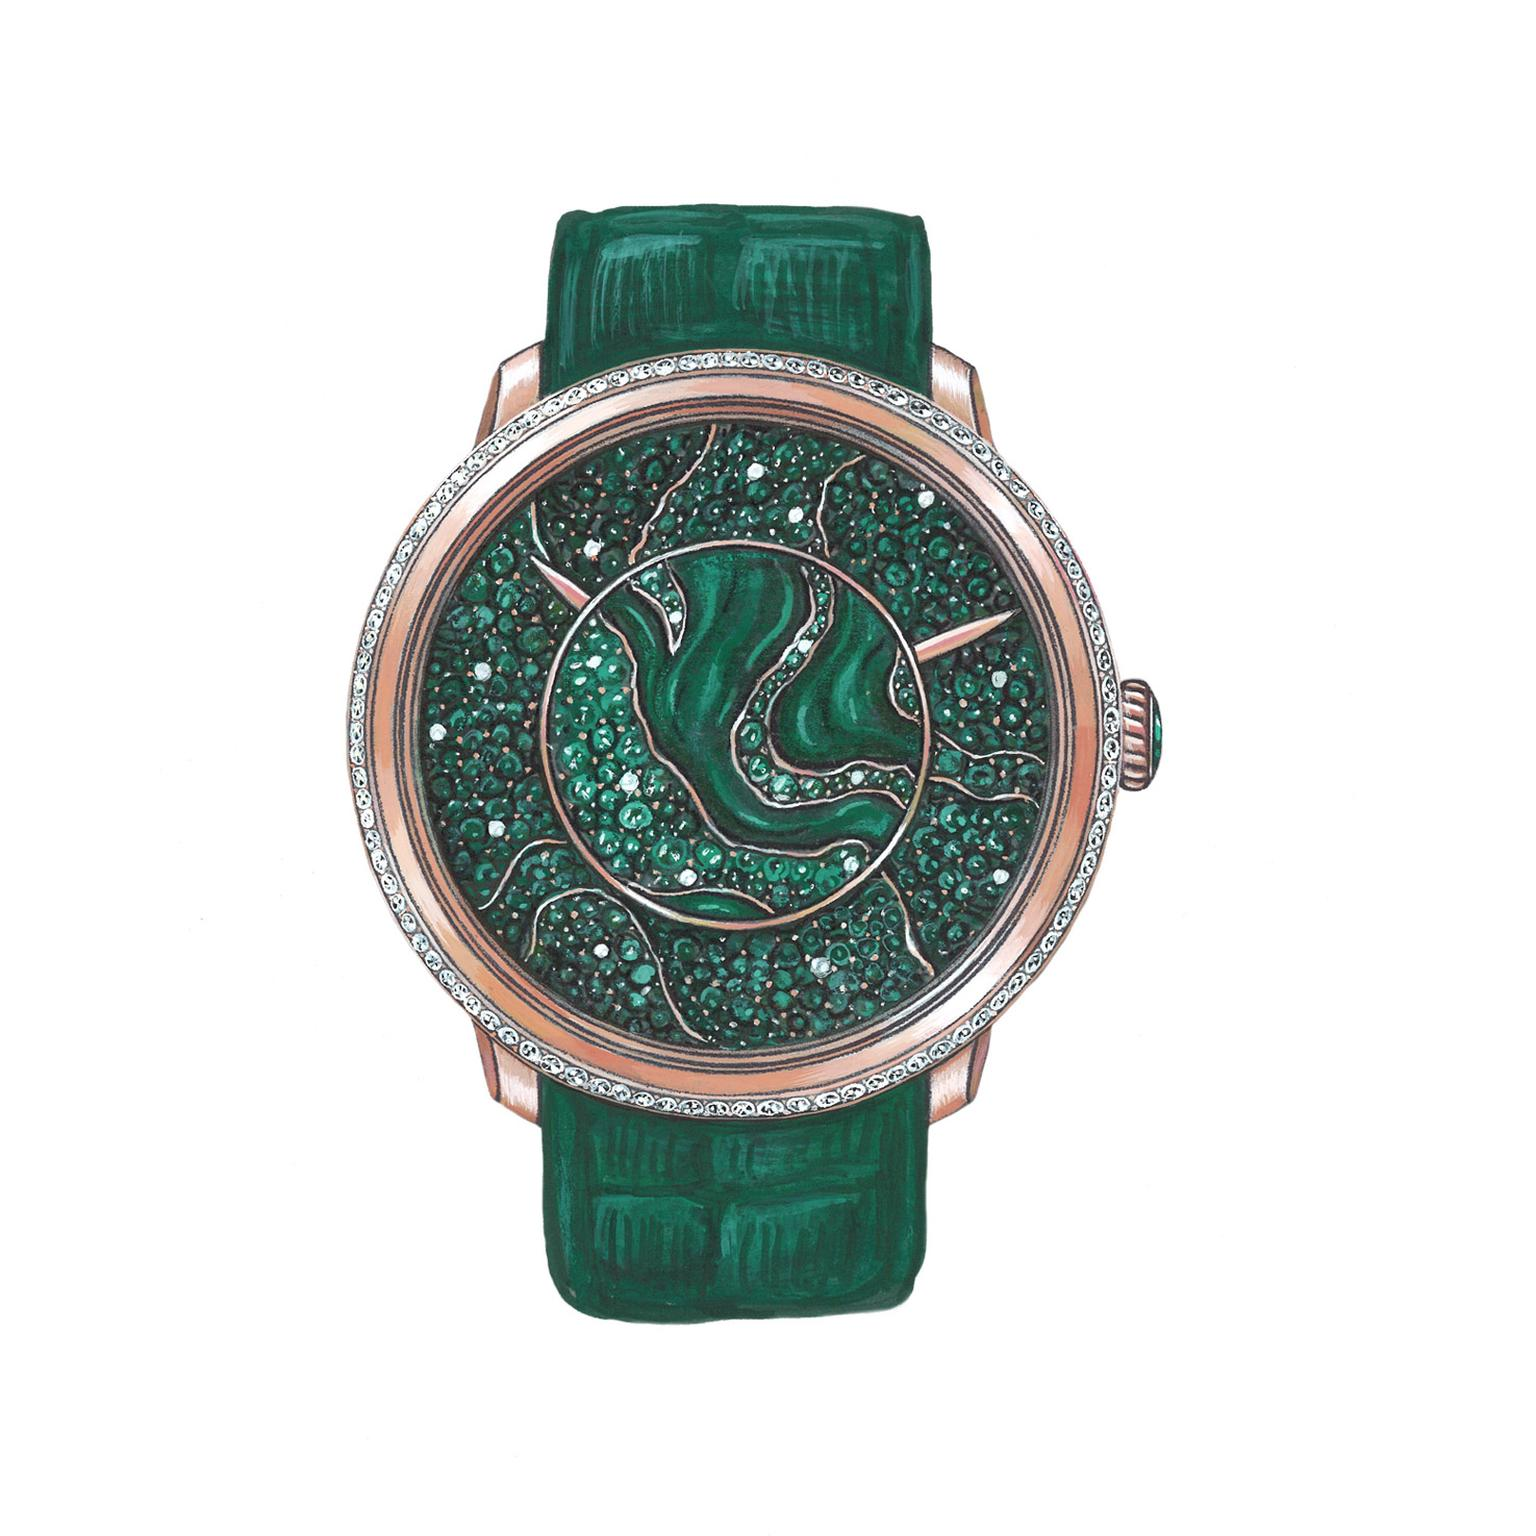 Fabergé Lady Libertine I watch